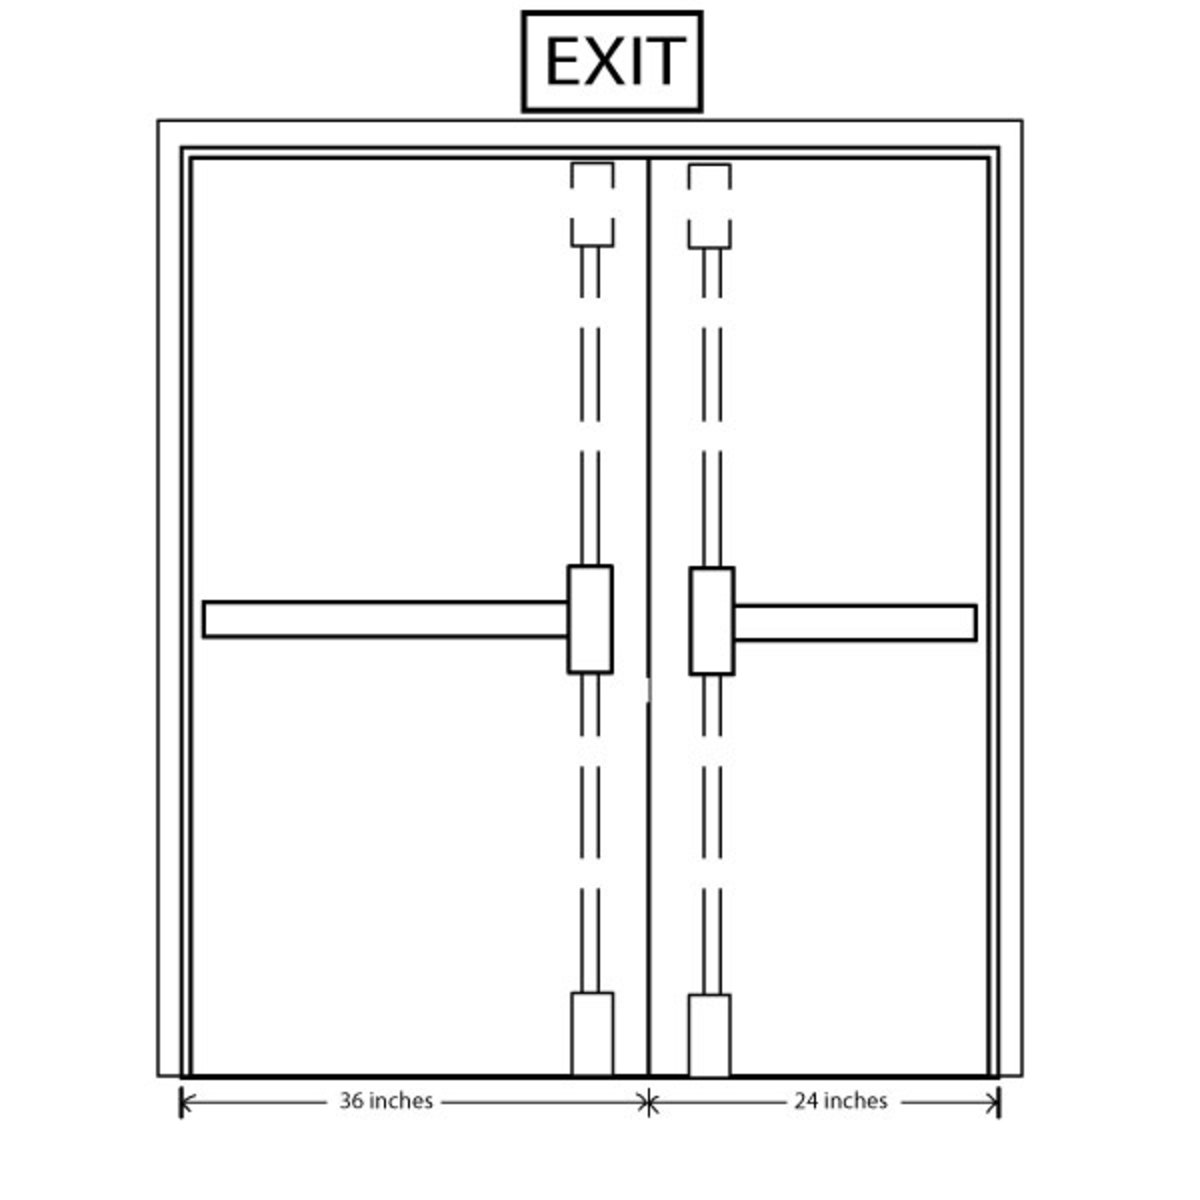 Fig. 4 - CVR Touch-Bar Exit Devices on Uneven Pair of Doors